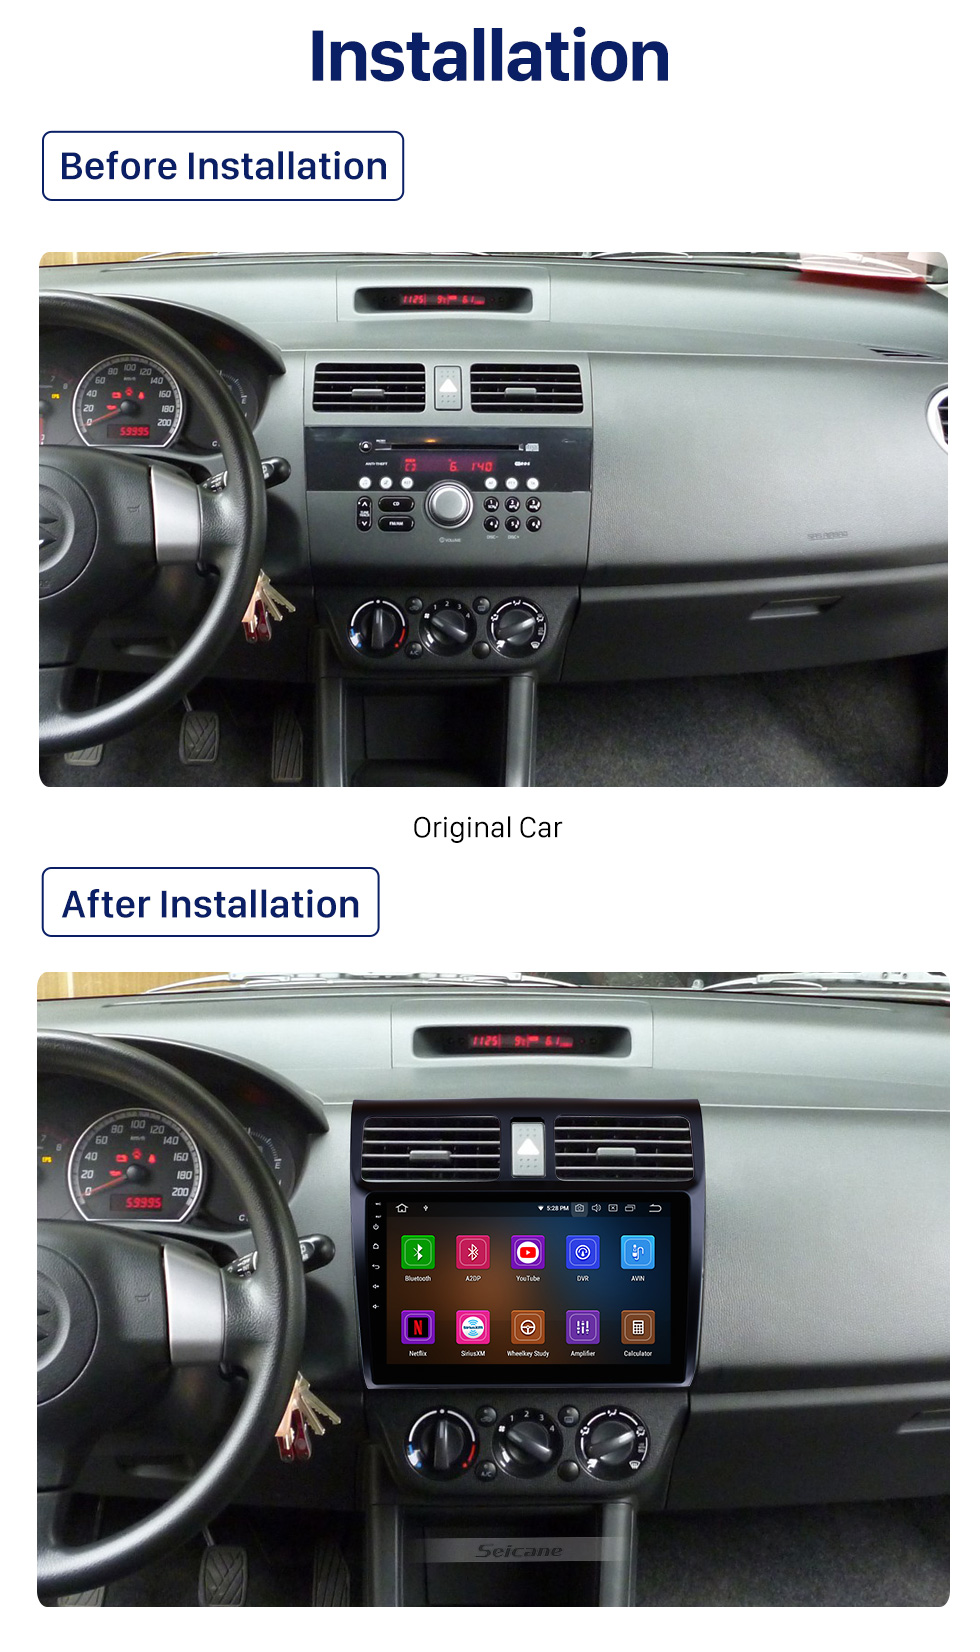 Seicane 10.1 inch Android 10.0 2005-2010 Suzuki Swift HD Touchscreen Radio GPS Navigation Bluetooth WIFI USB Aux Rearview Camera OBDII TPMS 1080P video